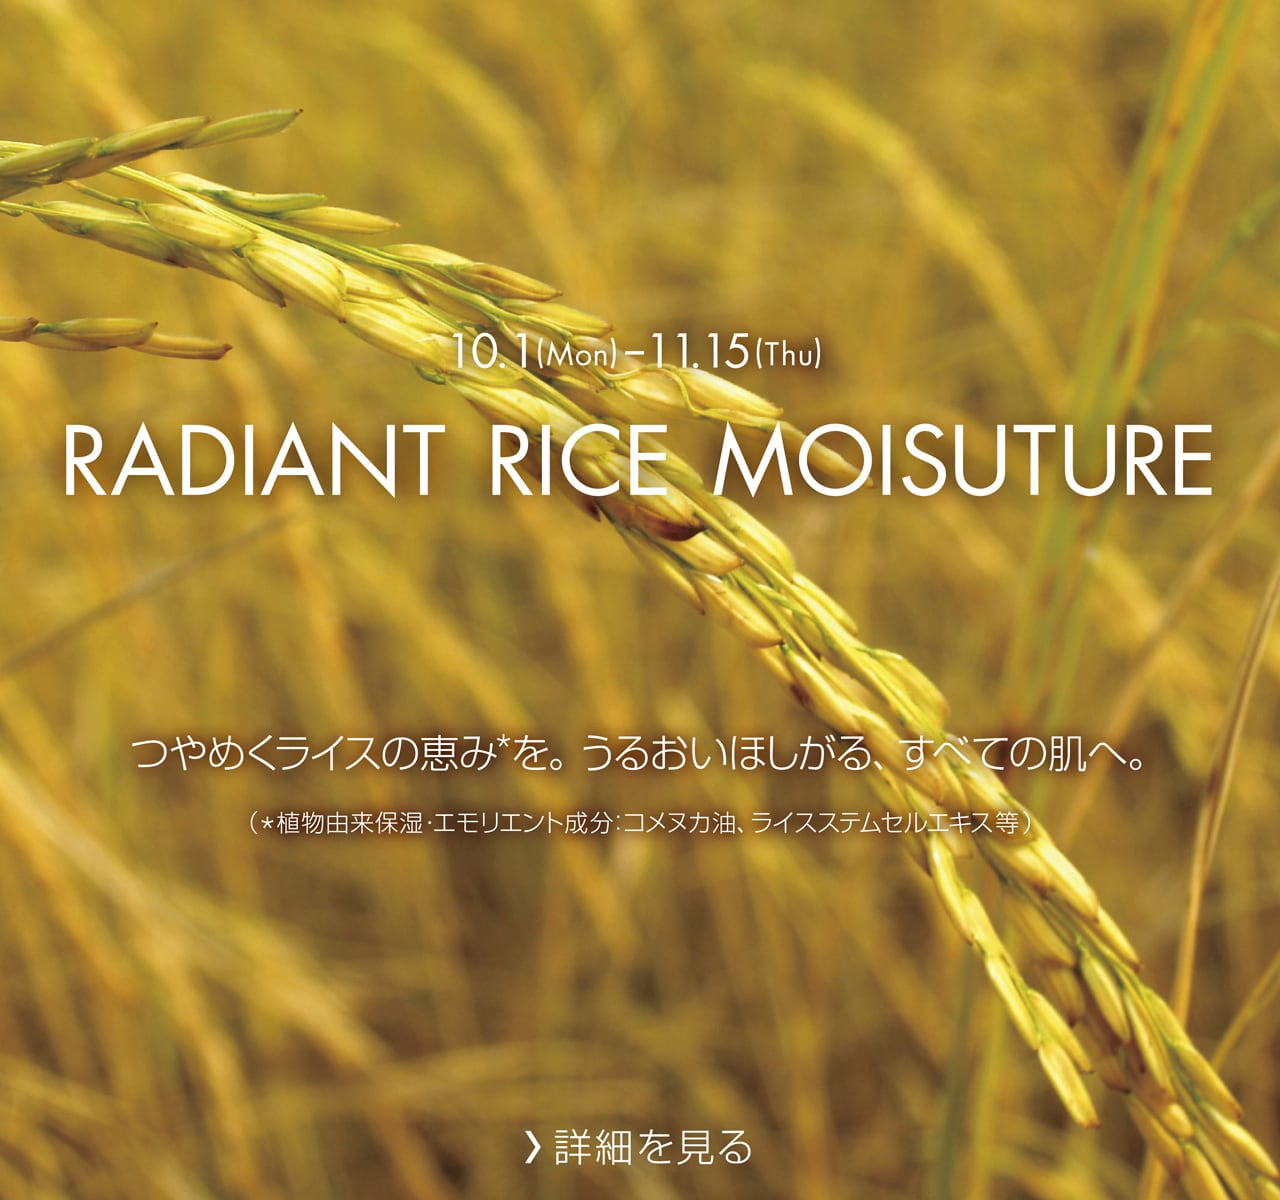 RADIANT RICE MOISUTURE